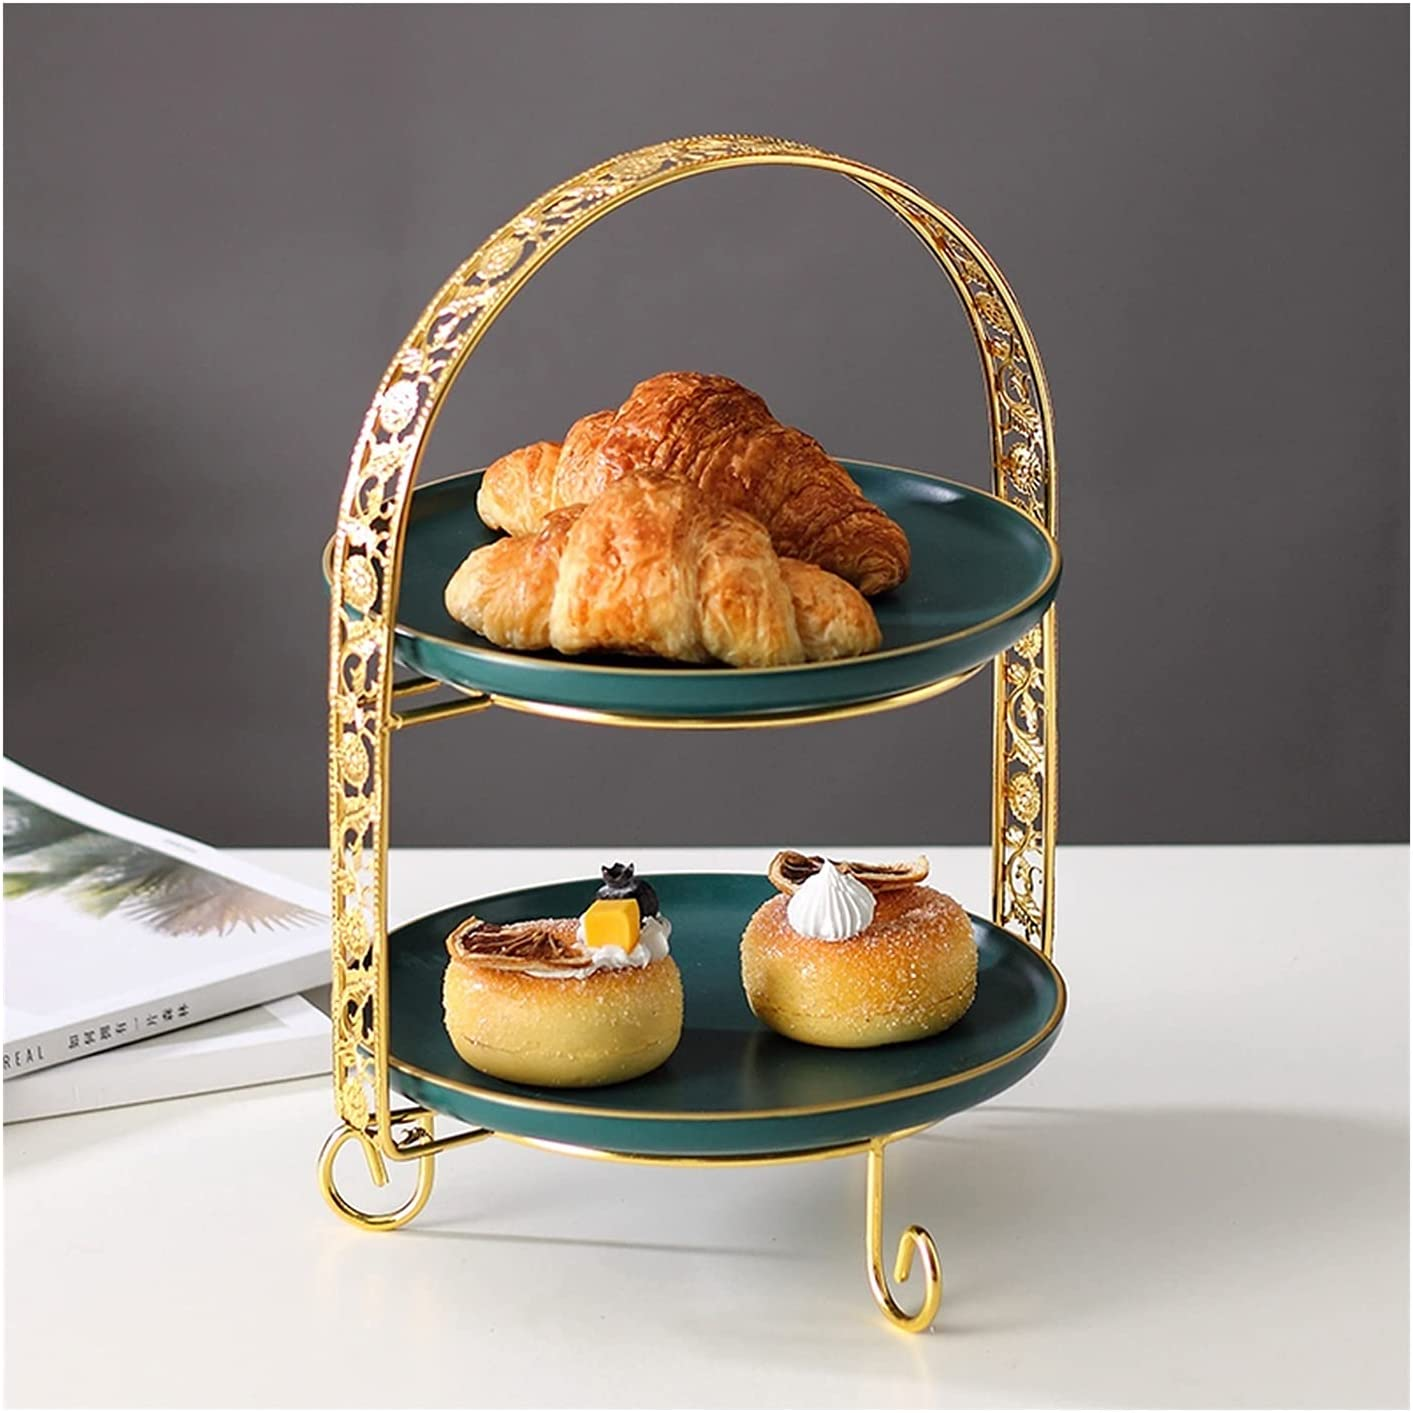 Cupcake Holder Ceramic Cake Stand Table Ha Two-tier with Dessert Discount mail Long-awaited order